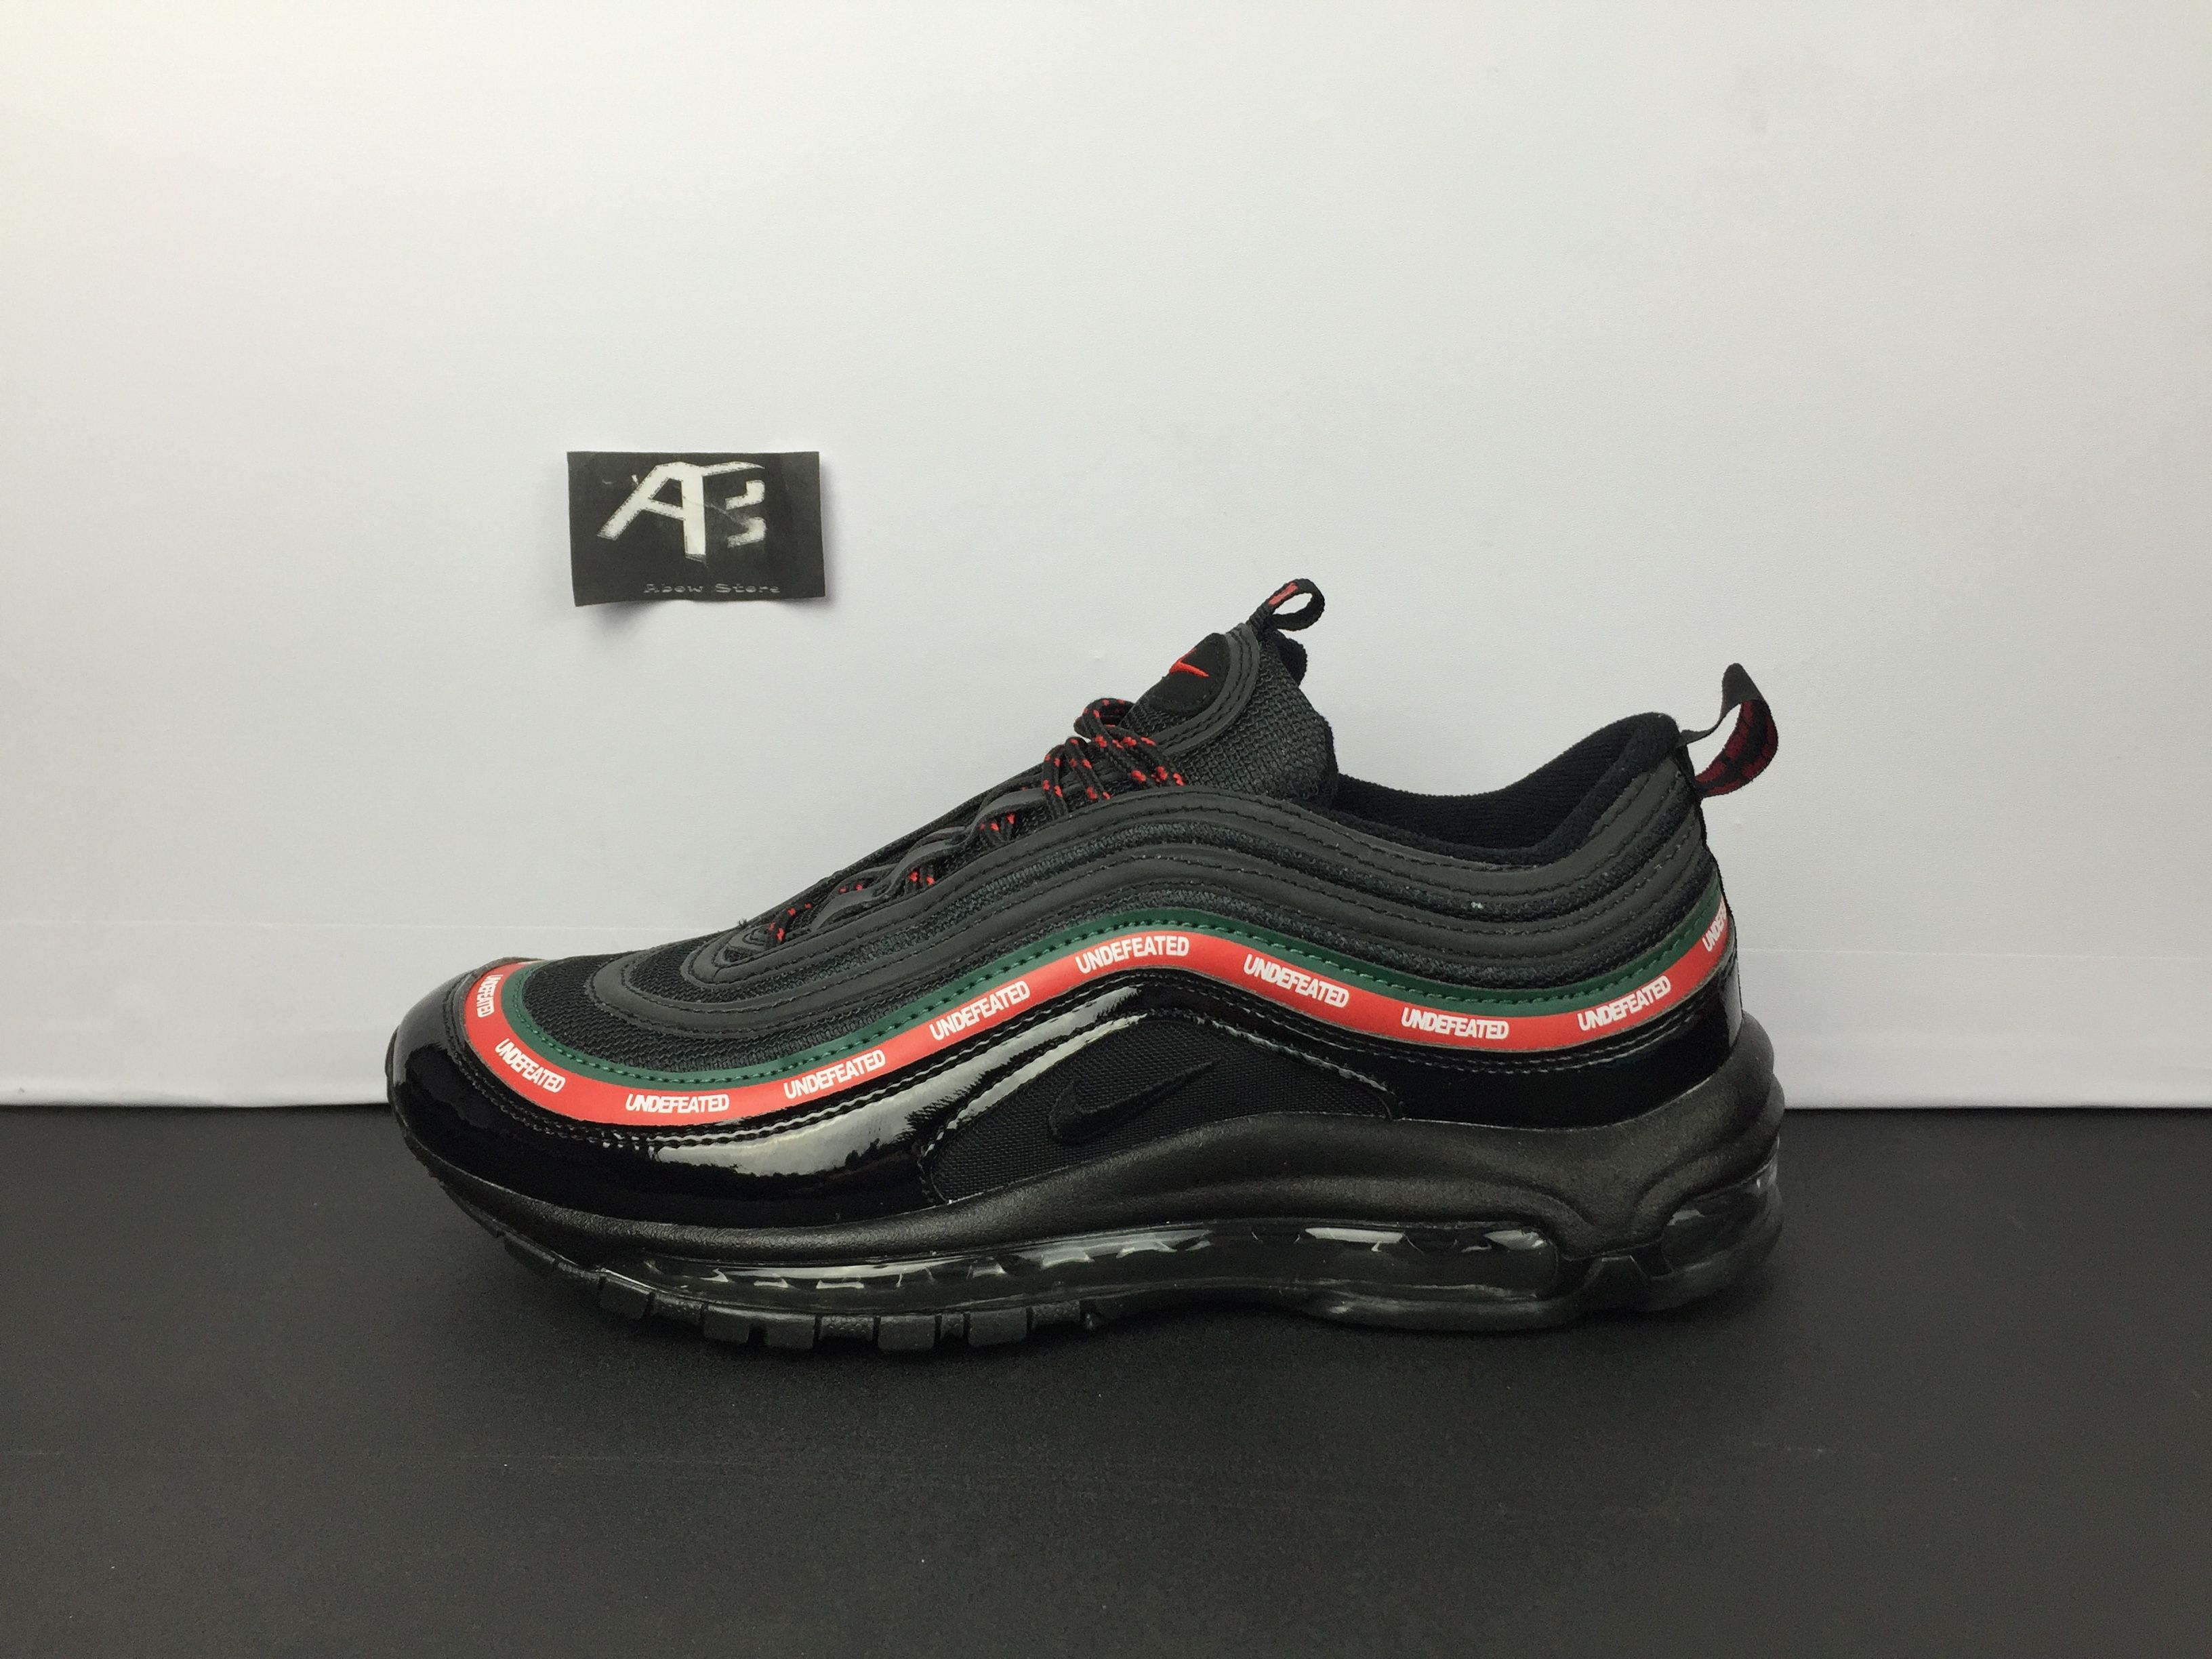 12 best Nike air max 97 images on Pinterest | Nike air max, Black and white  and Business shoe